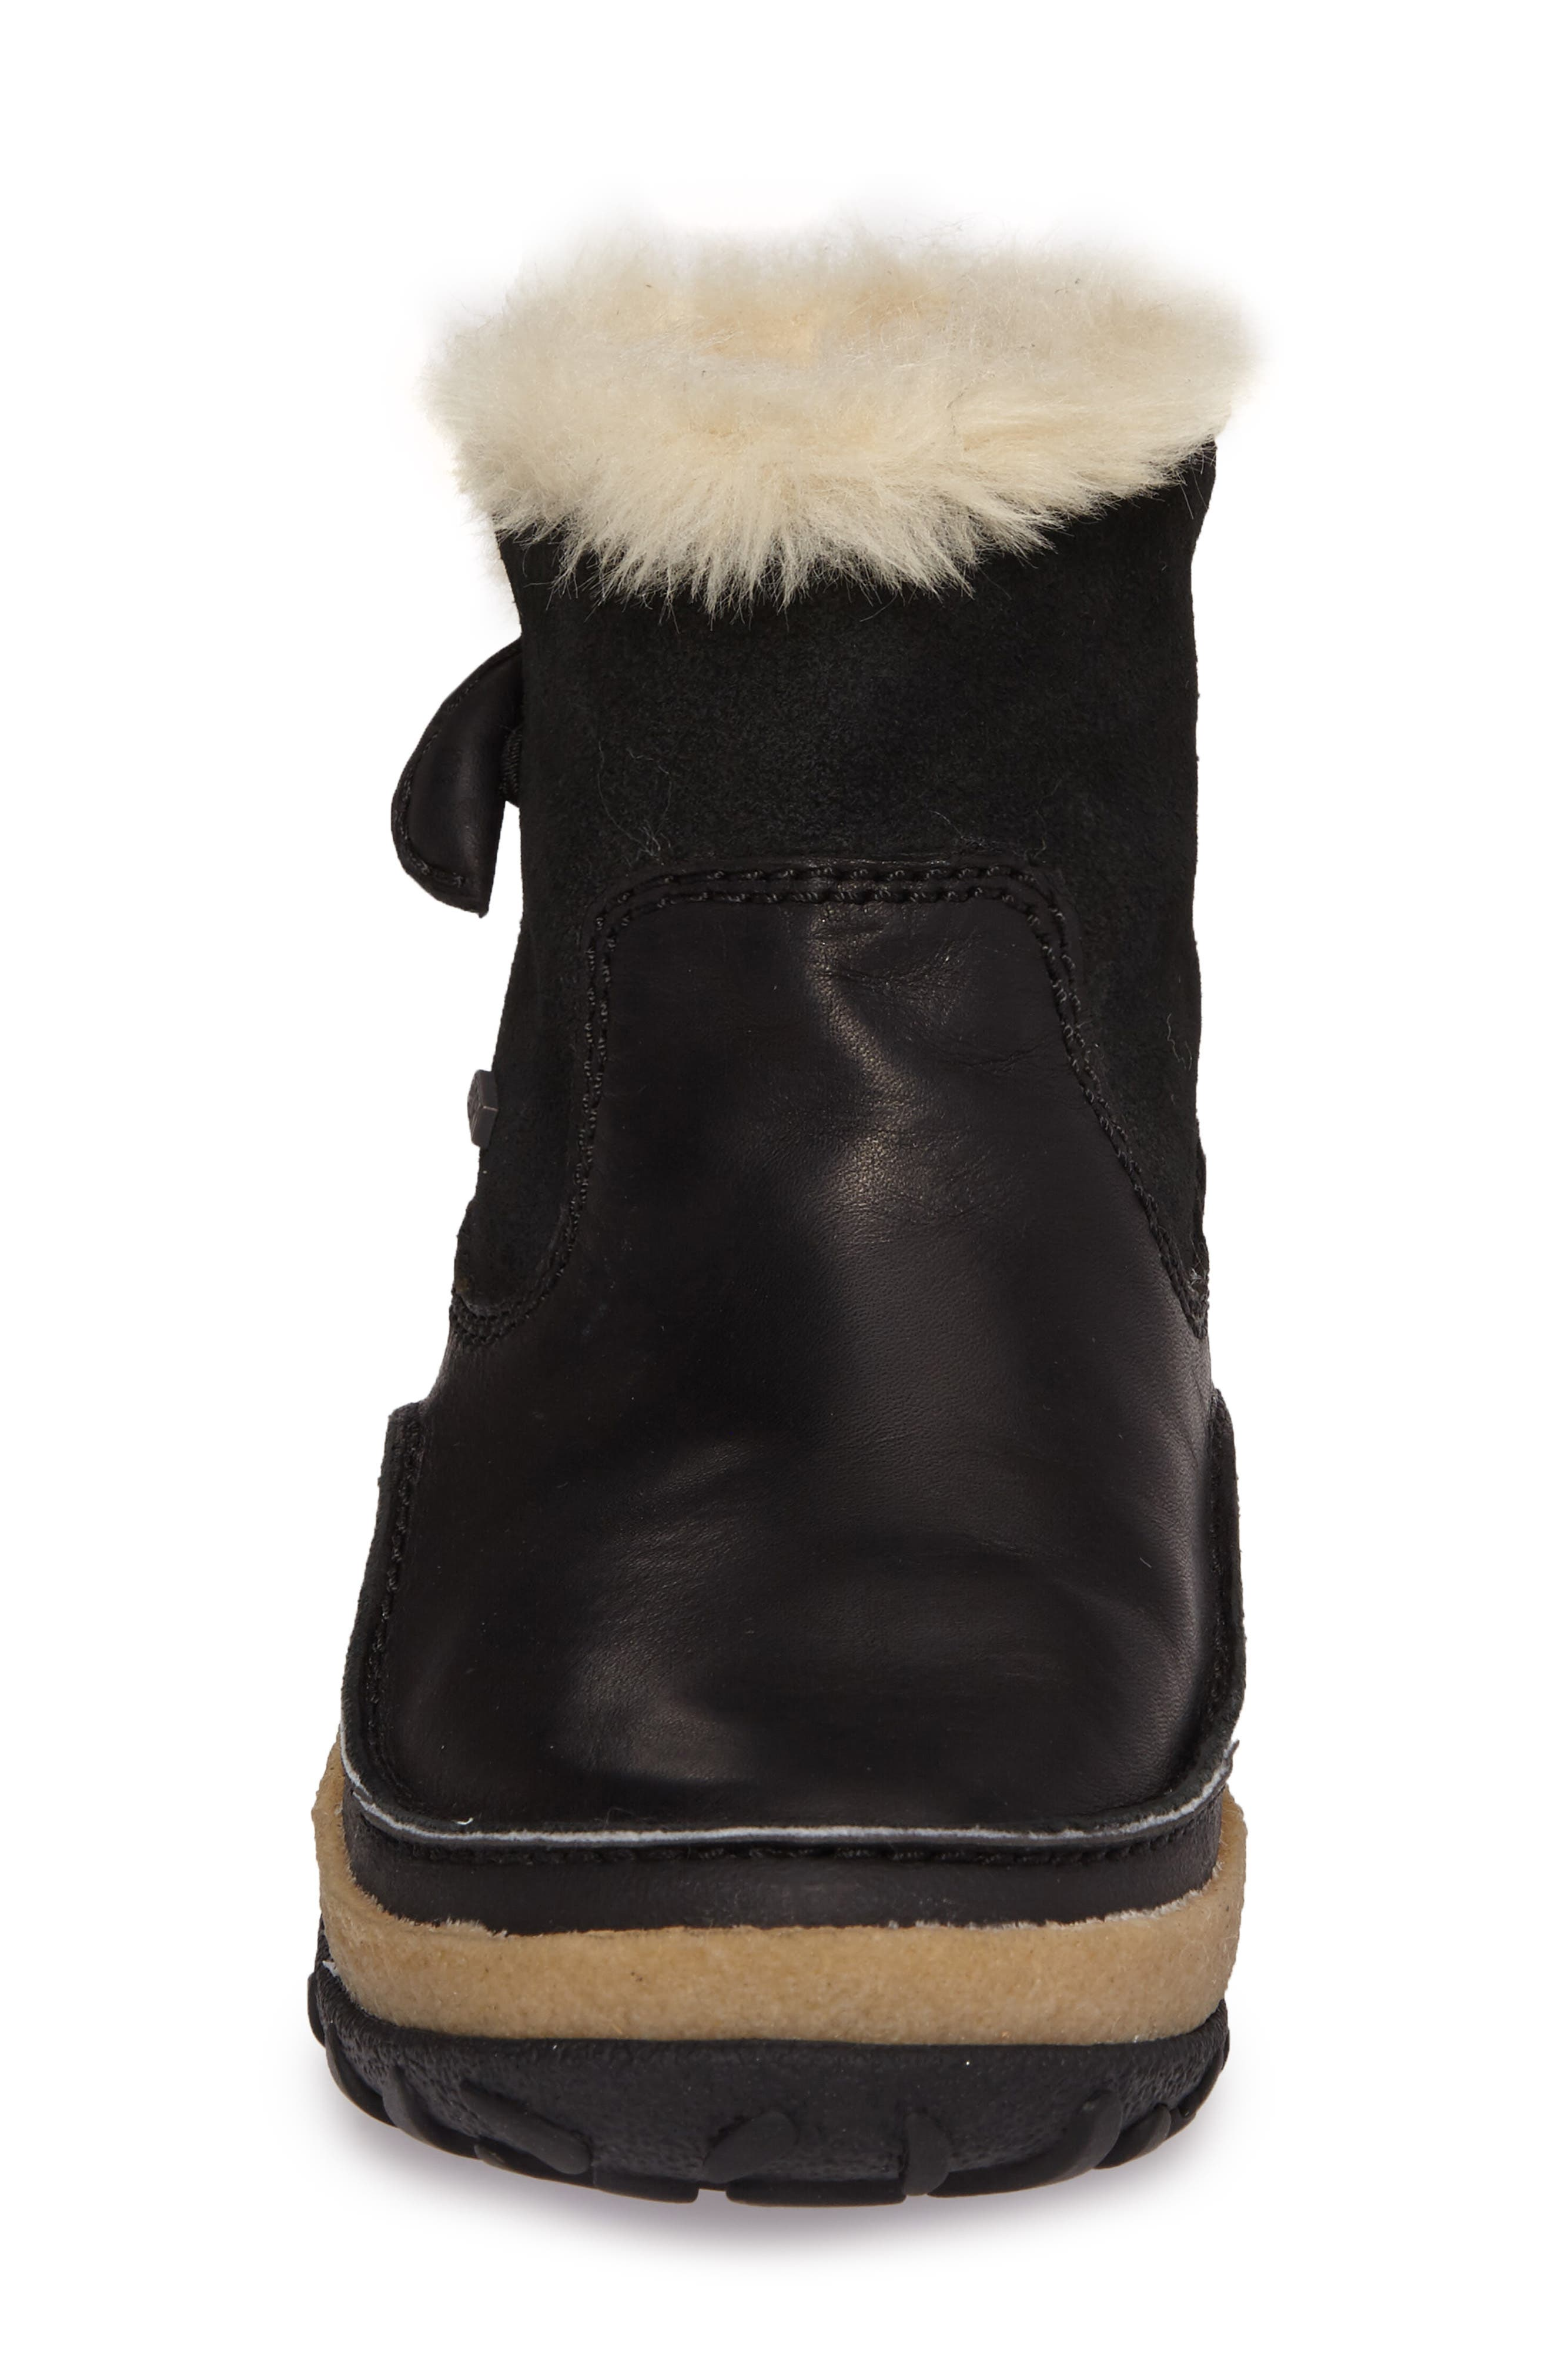 Tremblant Pull-On Polar Waterproof Bootie,                             Alternate thumbnail 4, color,                             001